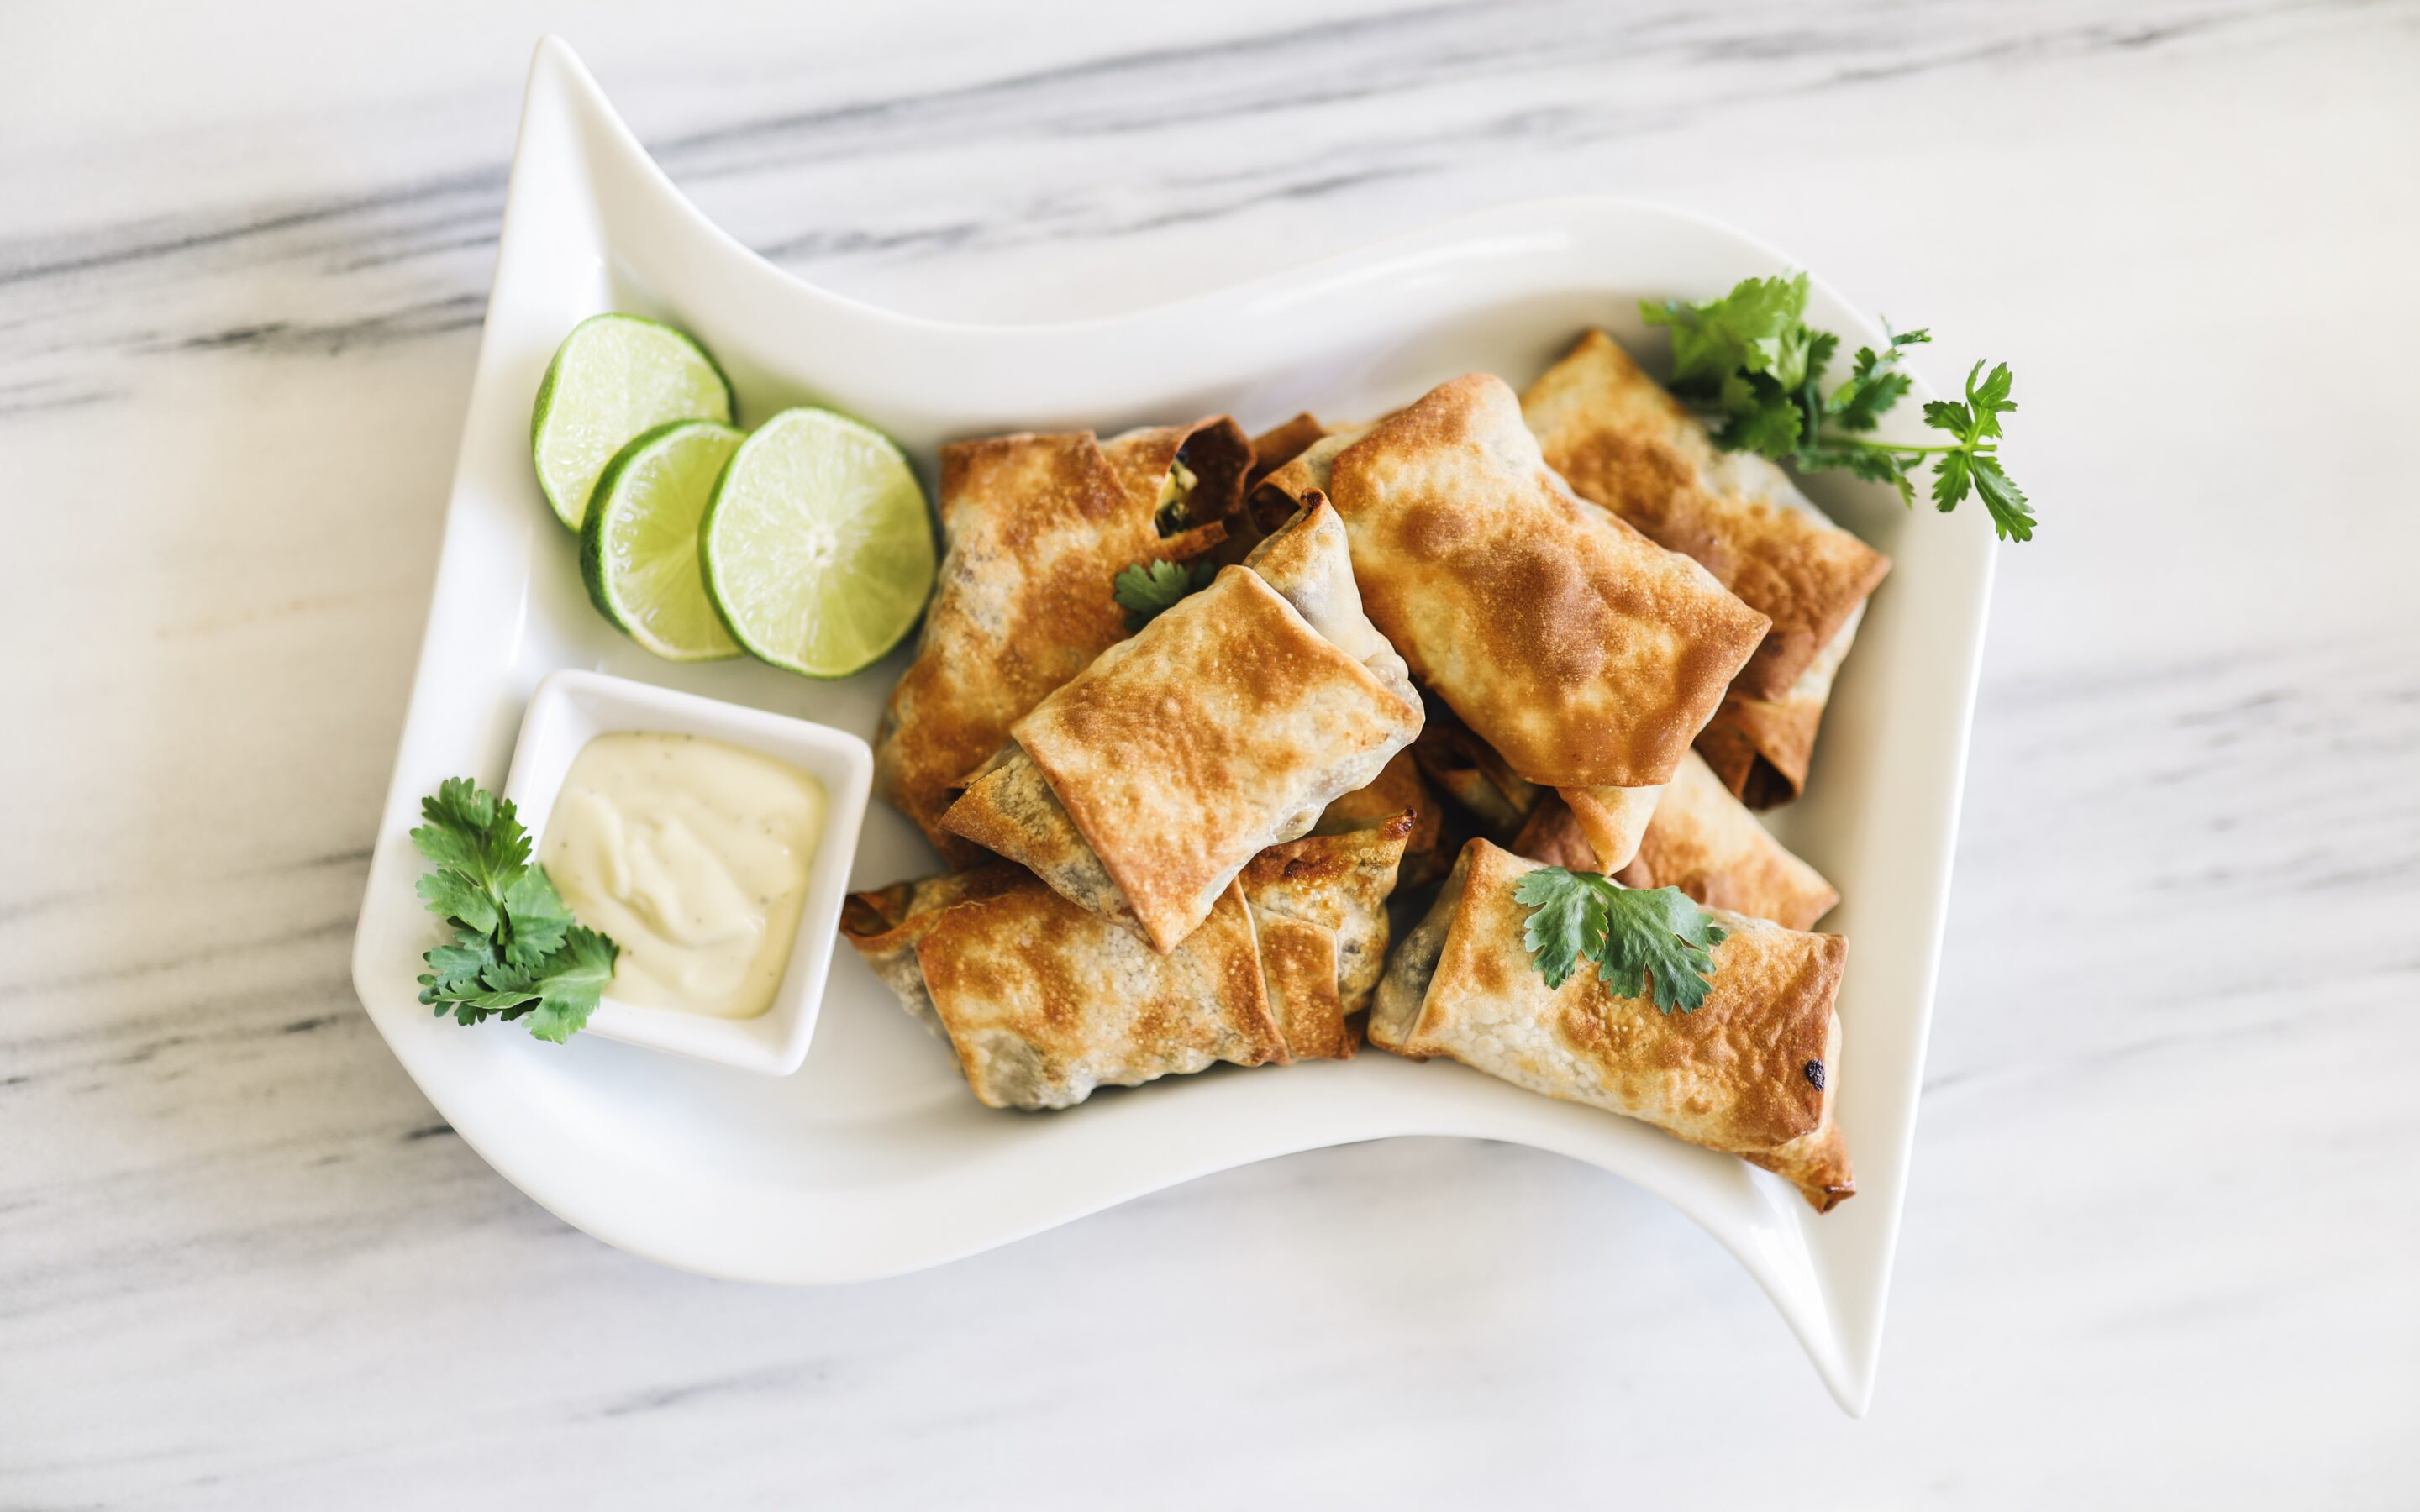 Healthy & Savory Southwest Air Fryer Egg Rolls